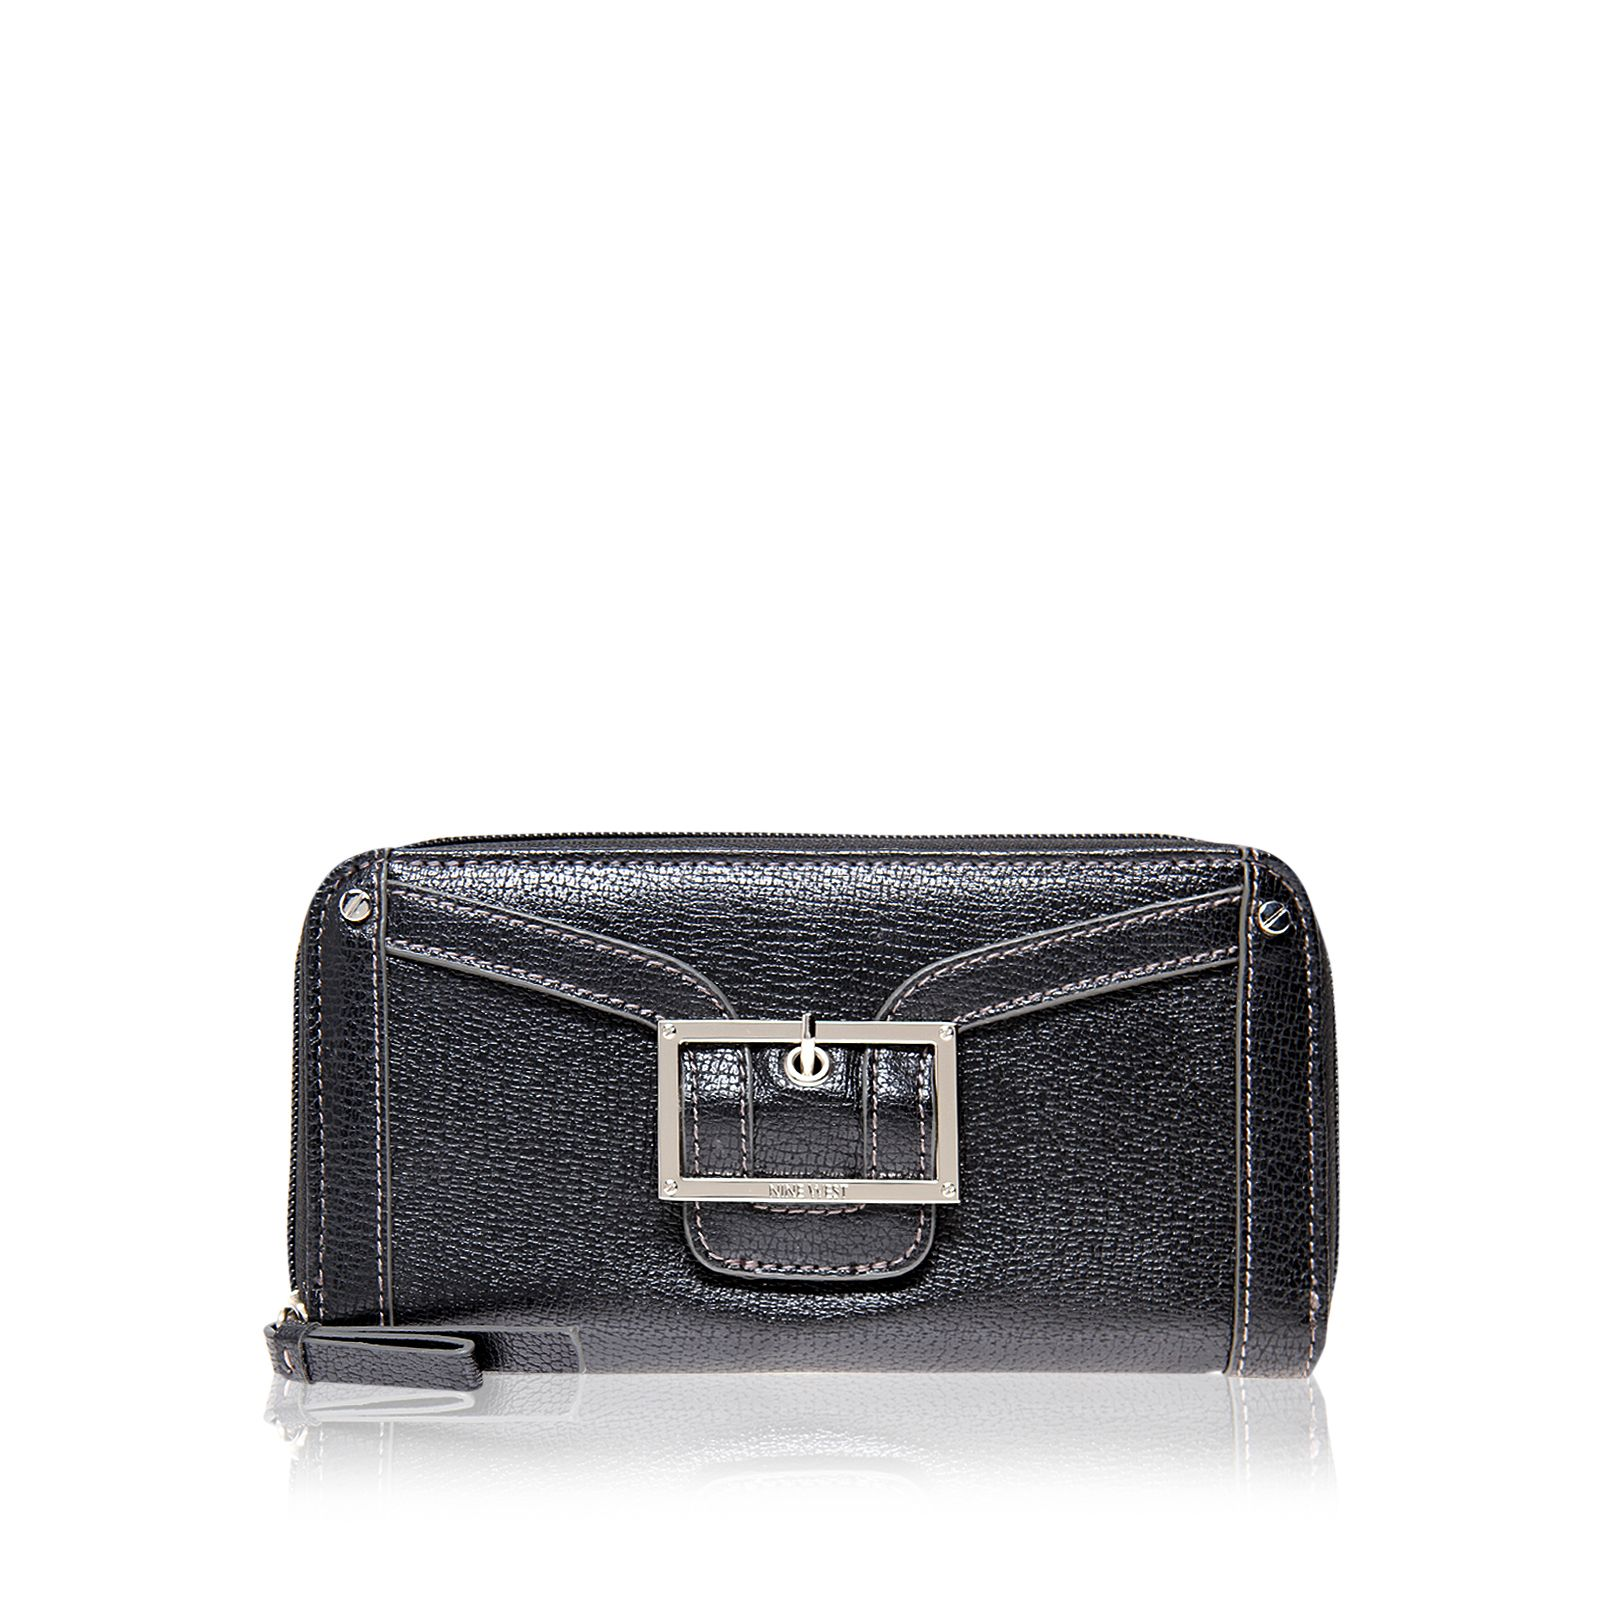 Framedin slf zip black purse